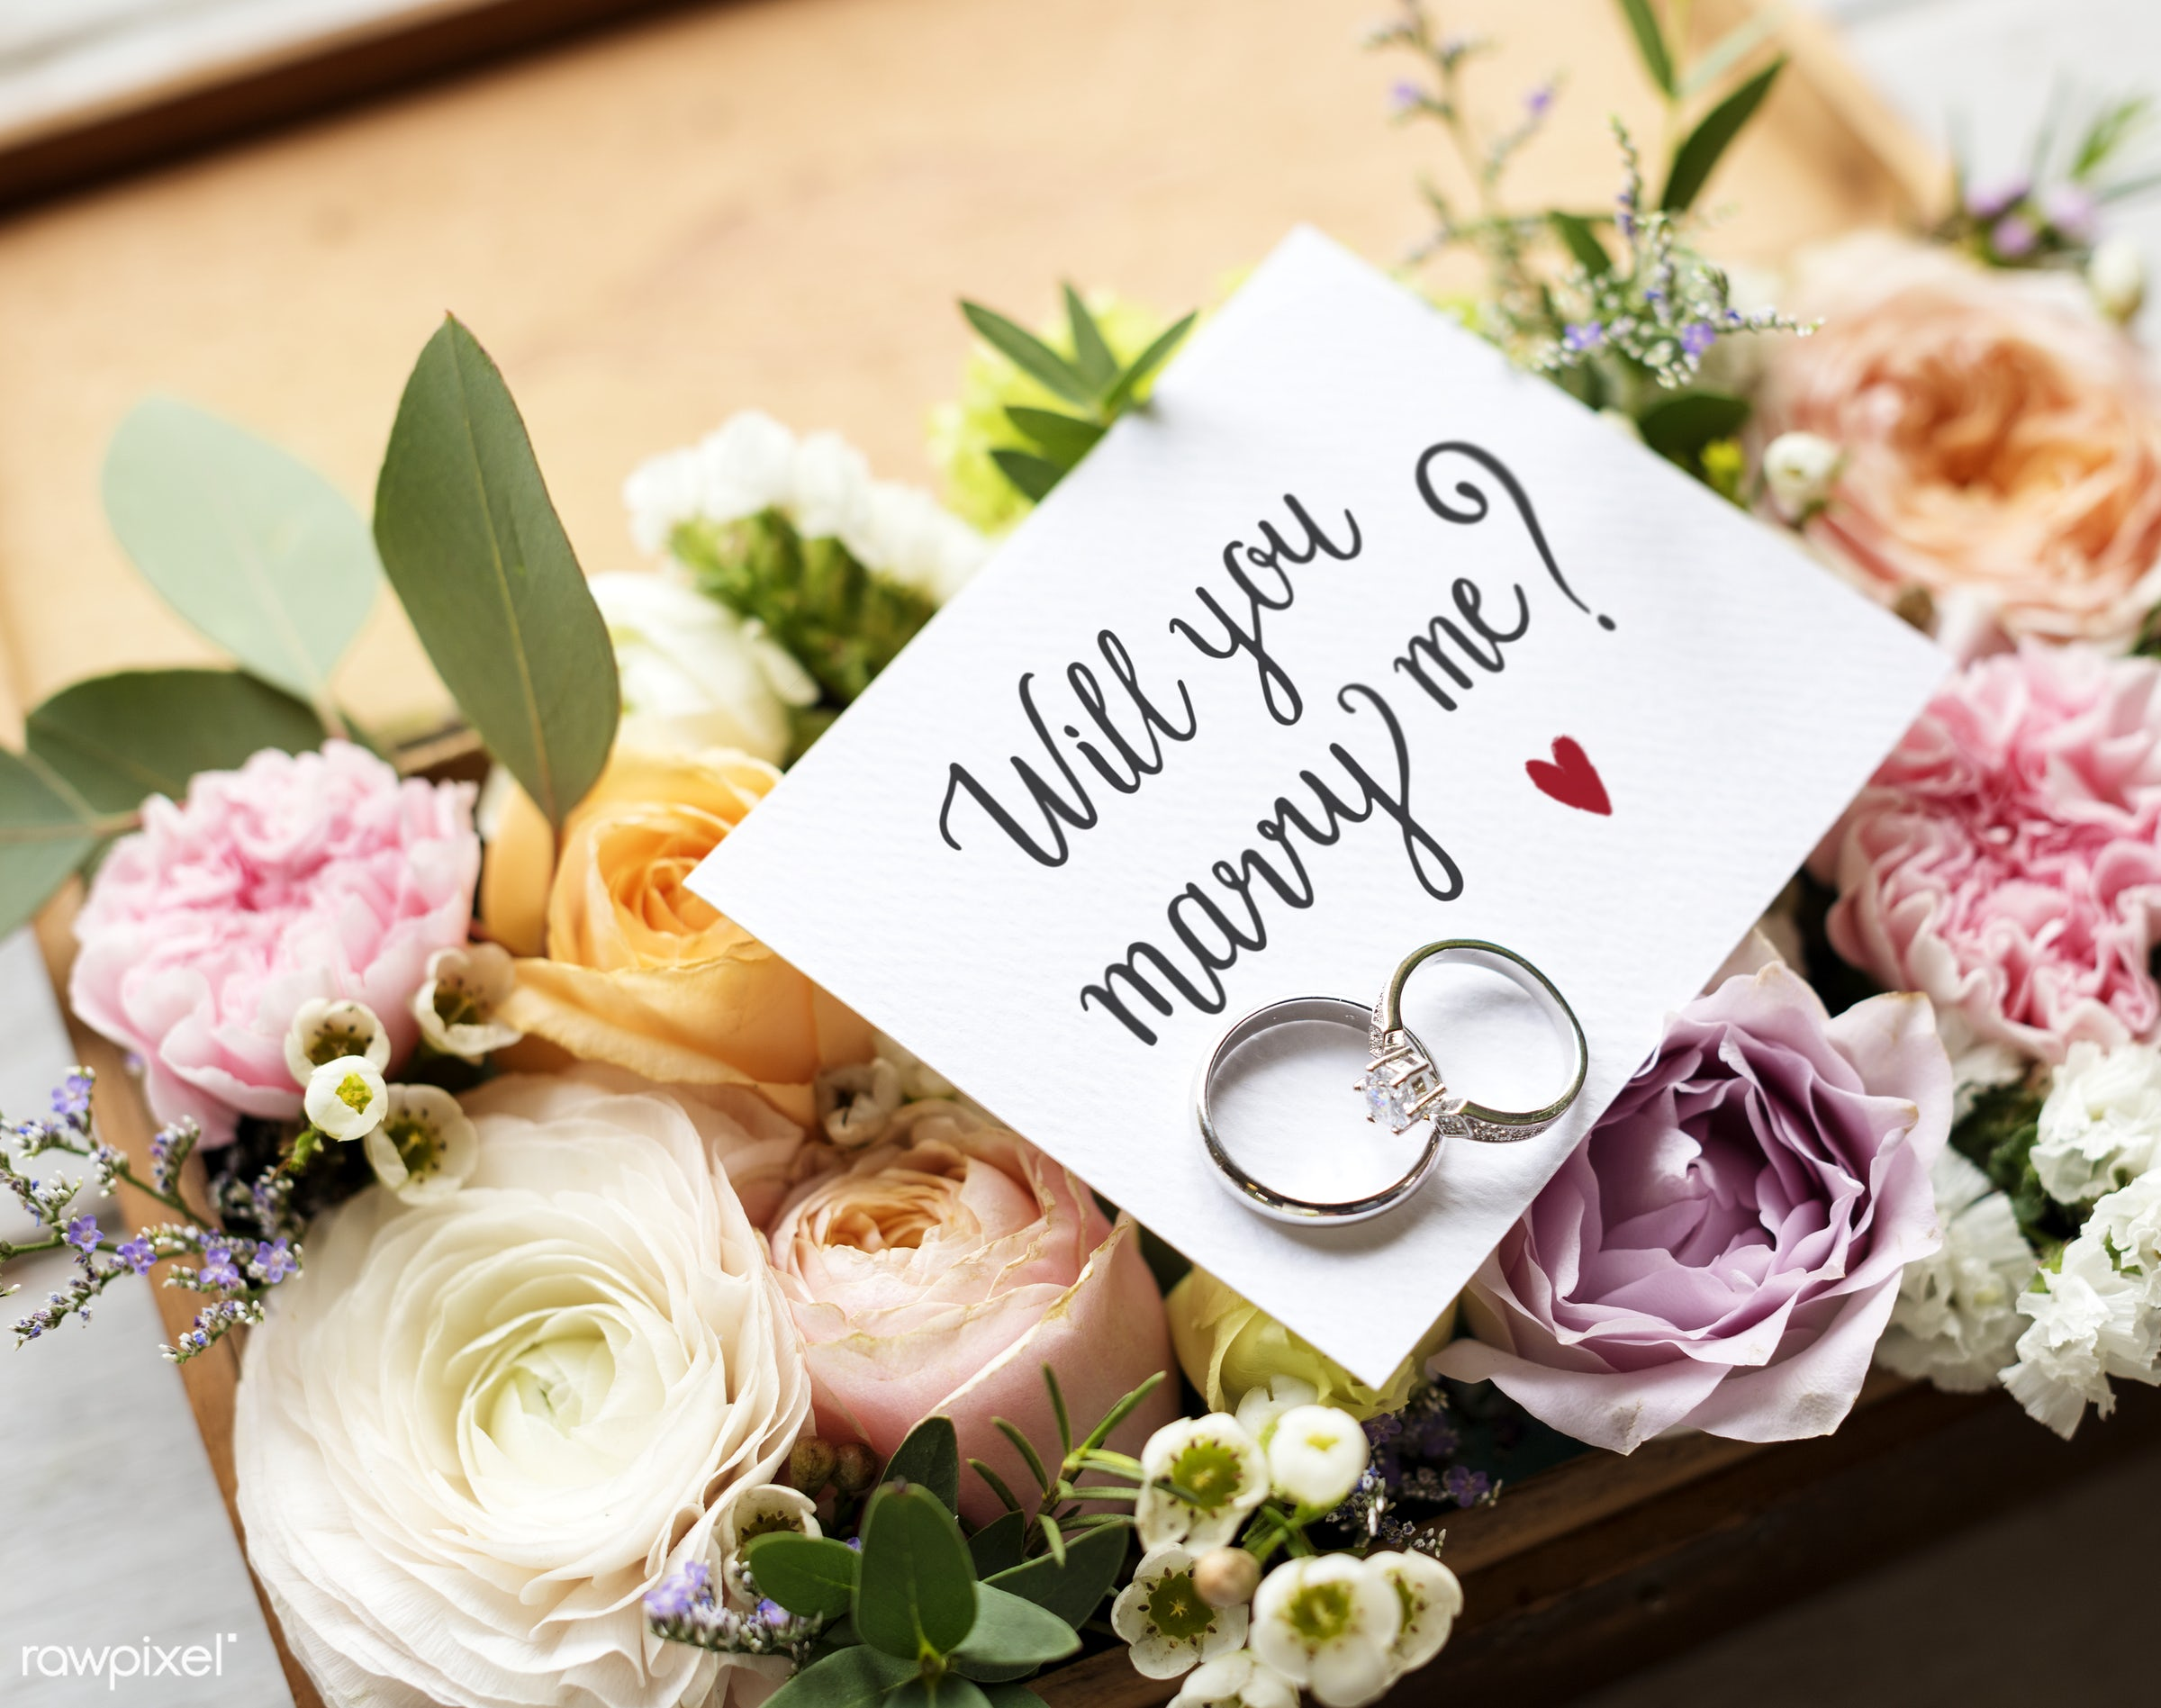 expression, nobody, bouquet, smitten, together, wax flower, love, propose, gather, bush, rings, flowers, cheerful, marry,...